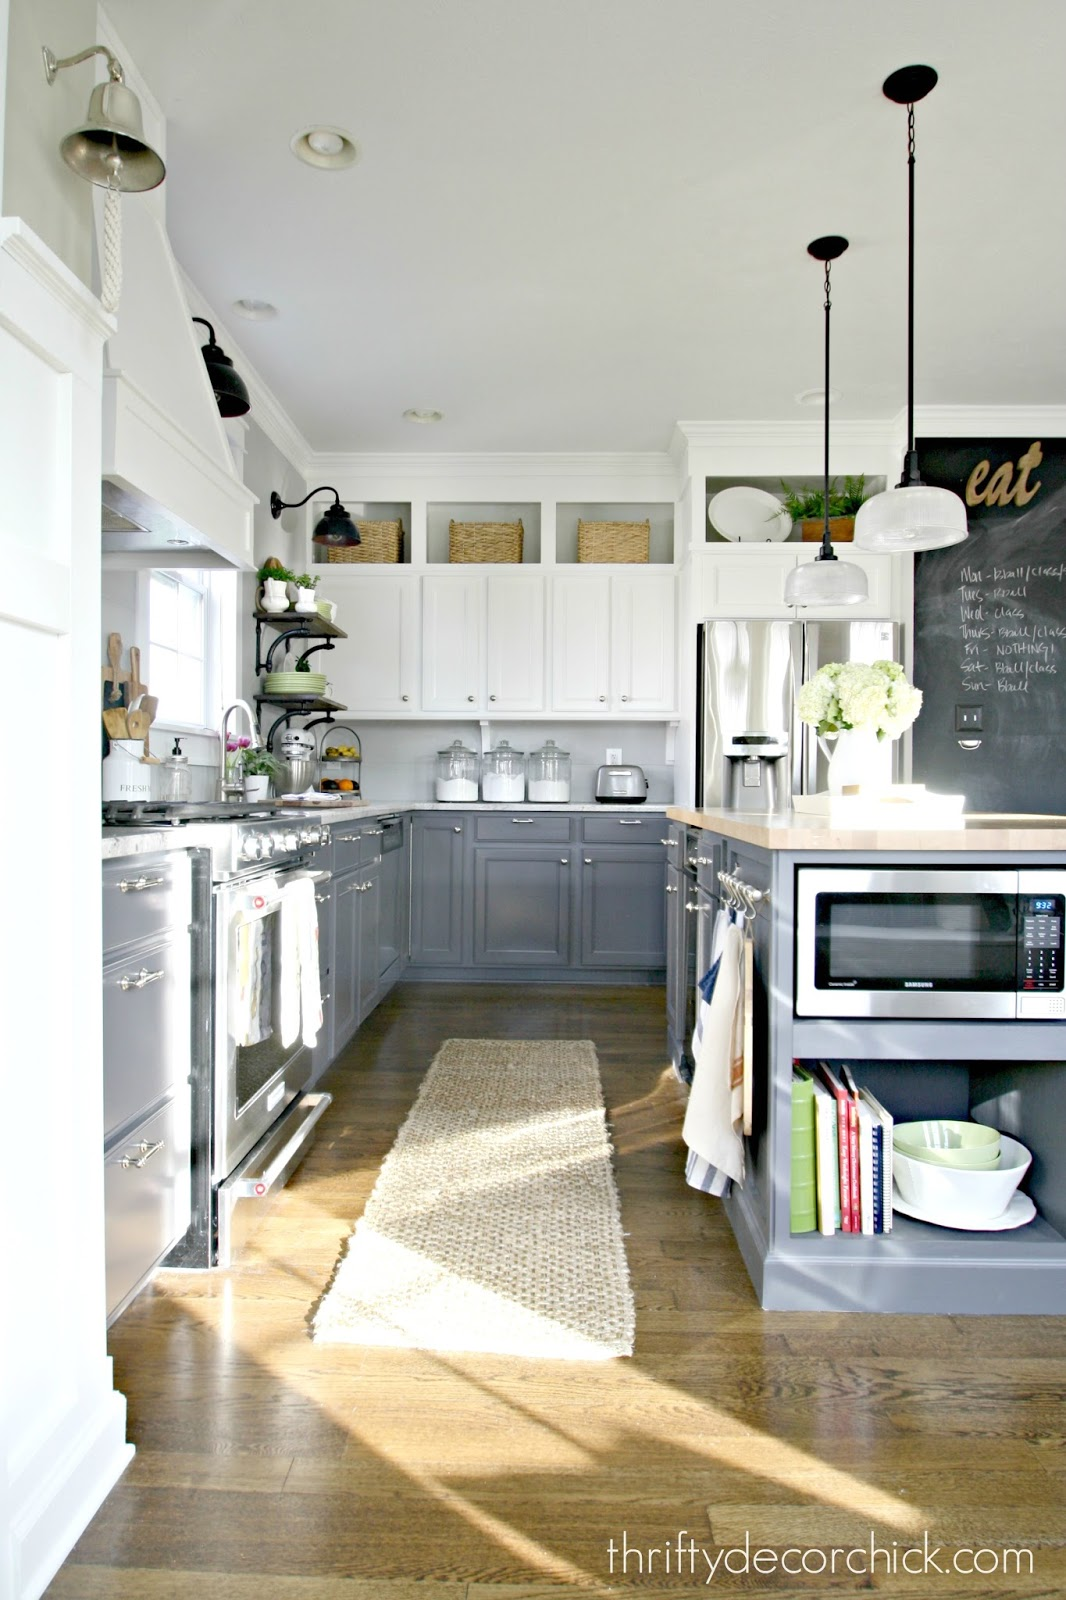 The Painted Cabinets (a Month Later) from Thrifty Decor Chick